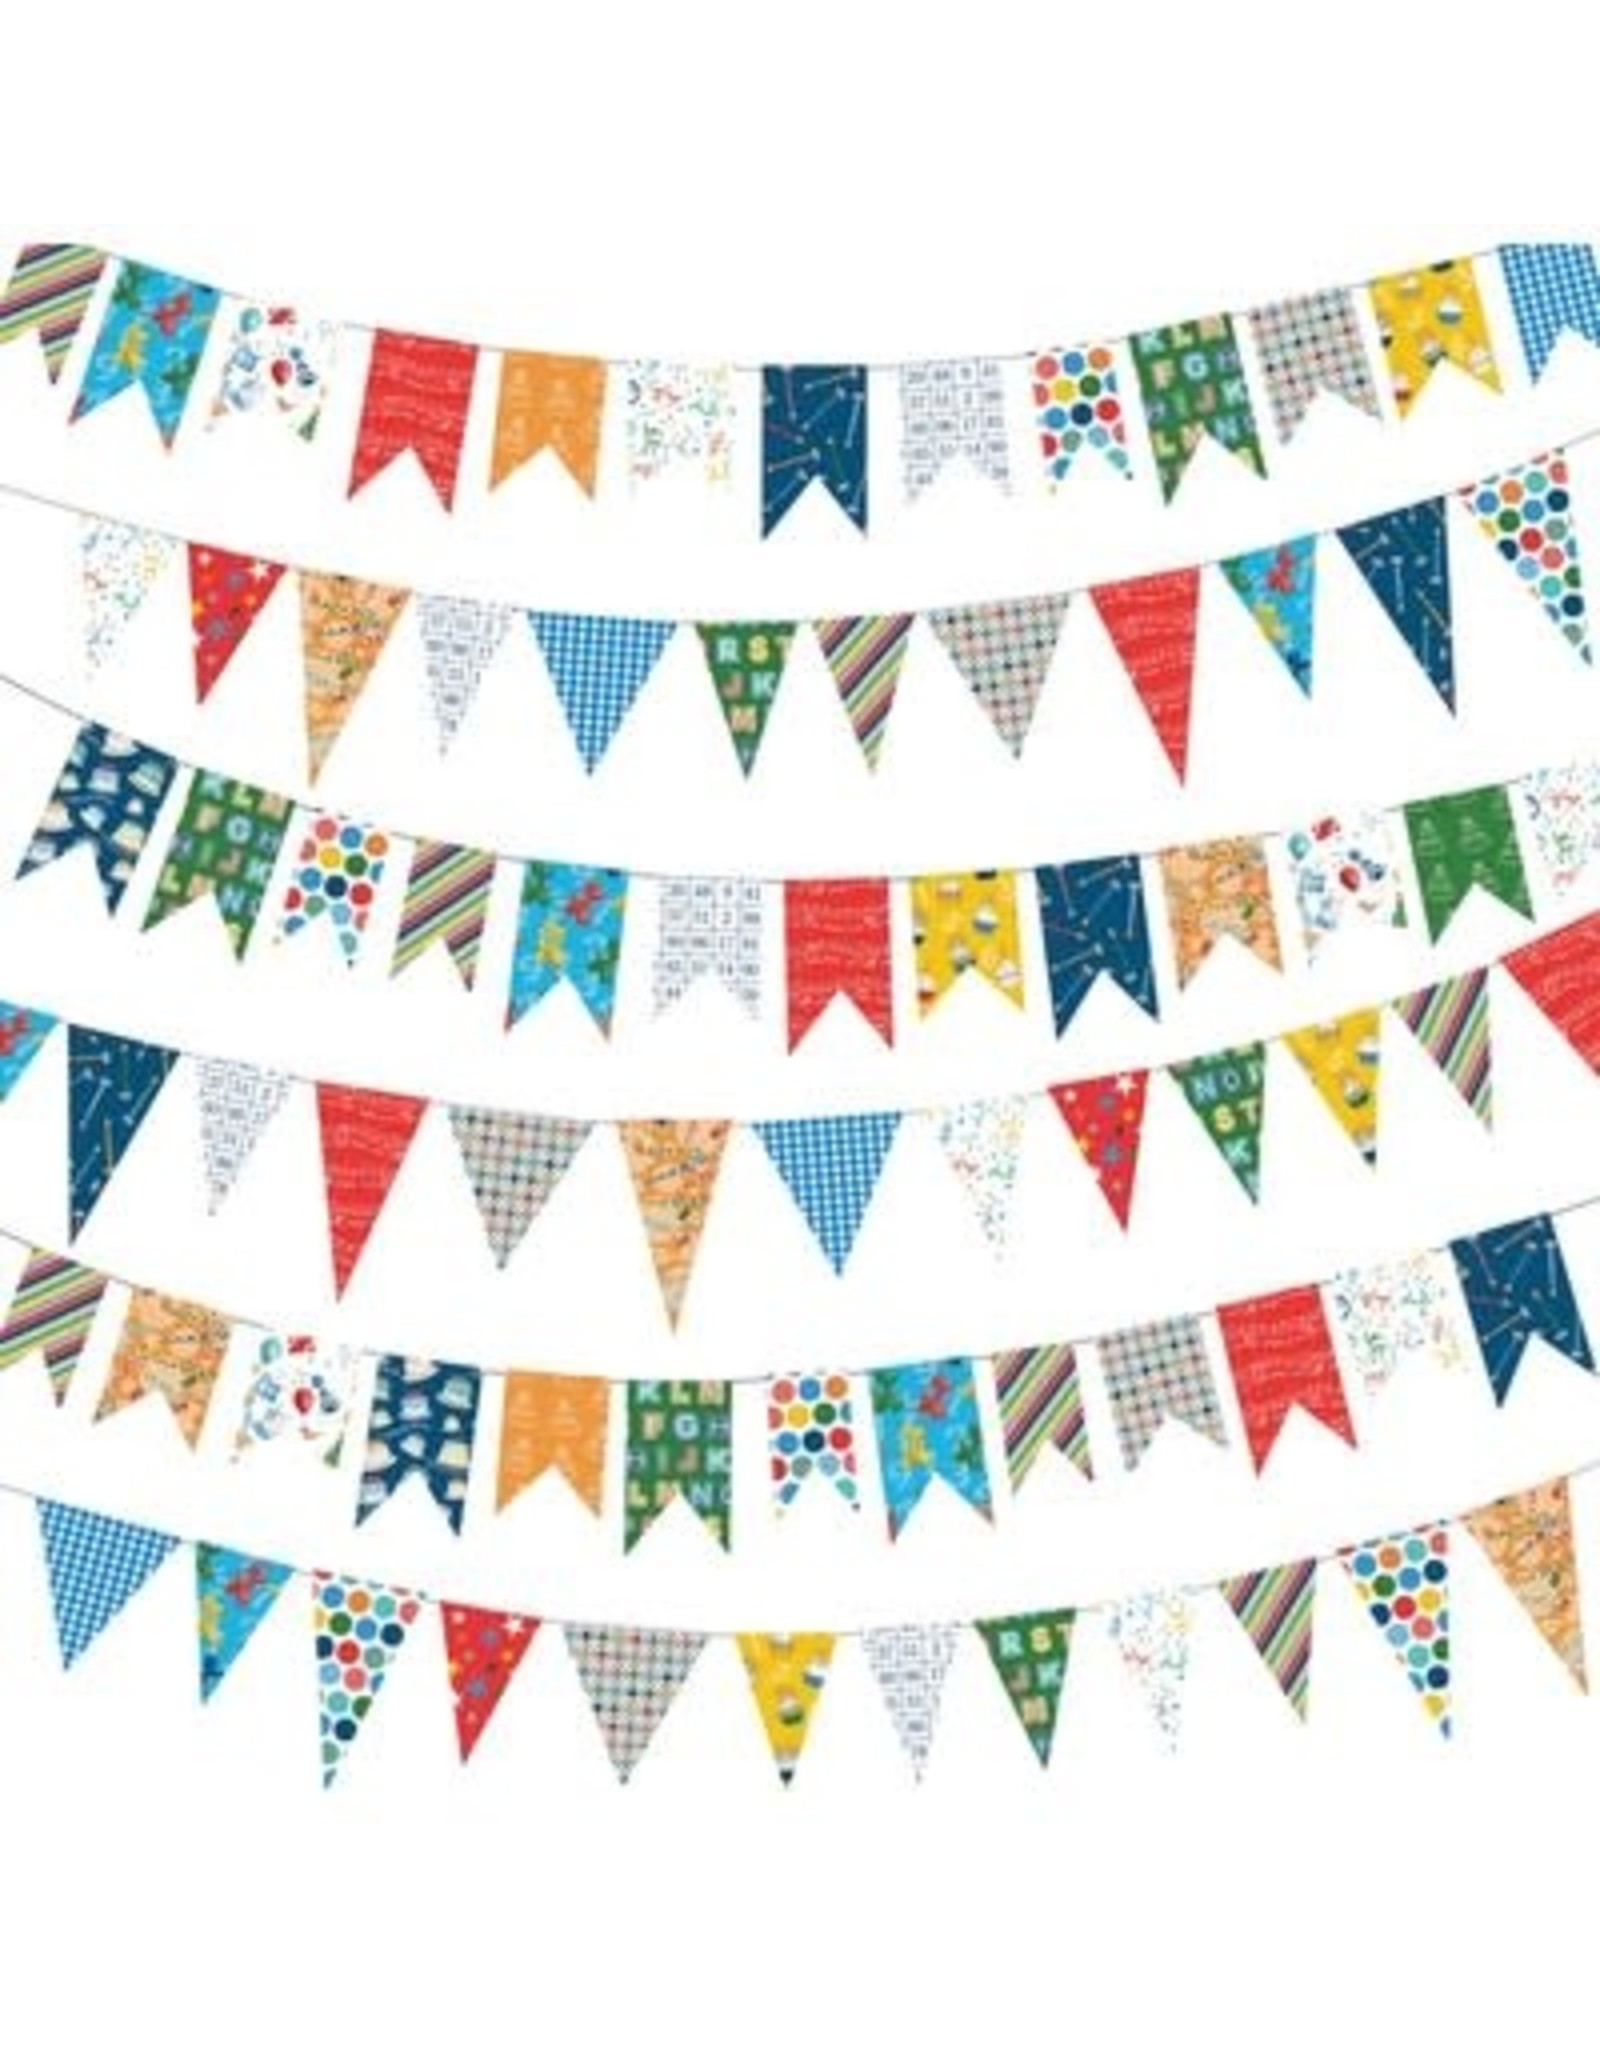 Echo Park 12X12 Patterned Paper, Let's Celebrate - Birthday Banners